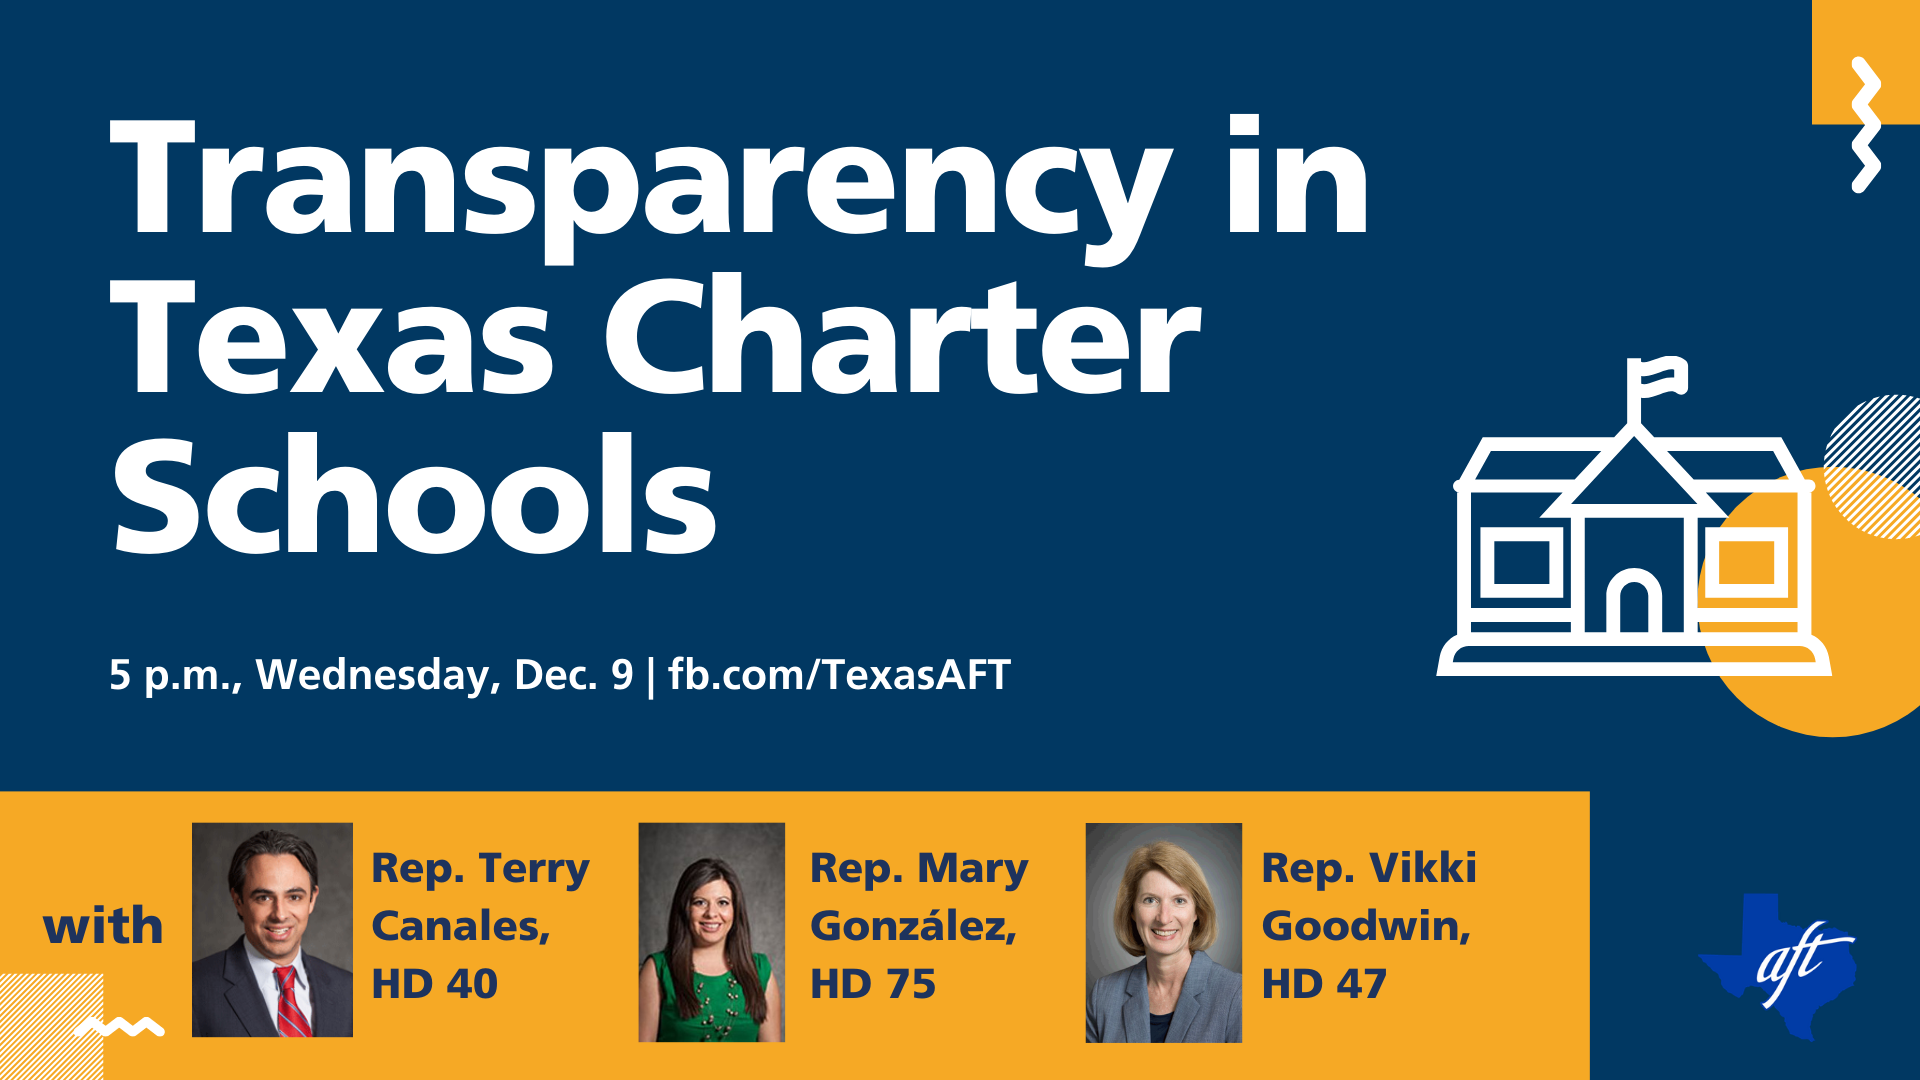 """Text says """"Transparency in Texas Charter Schools"""" and has event details for the town hall event that took place this week."""